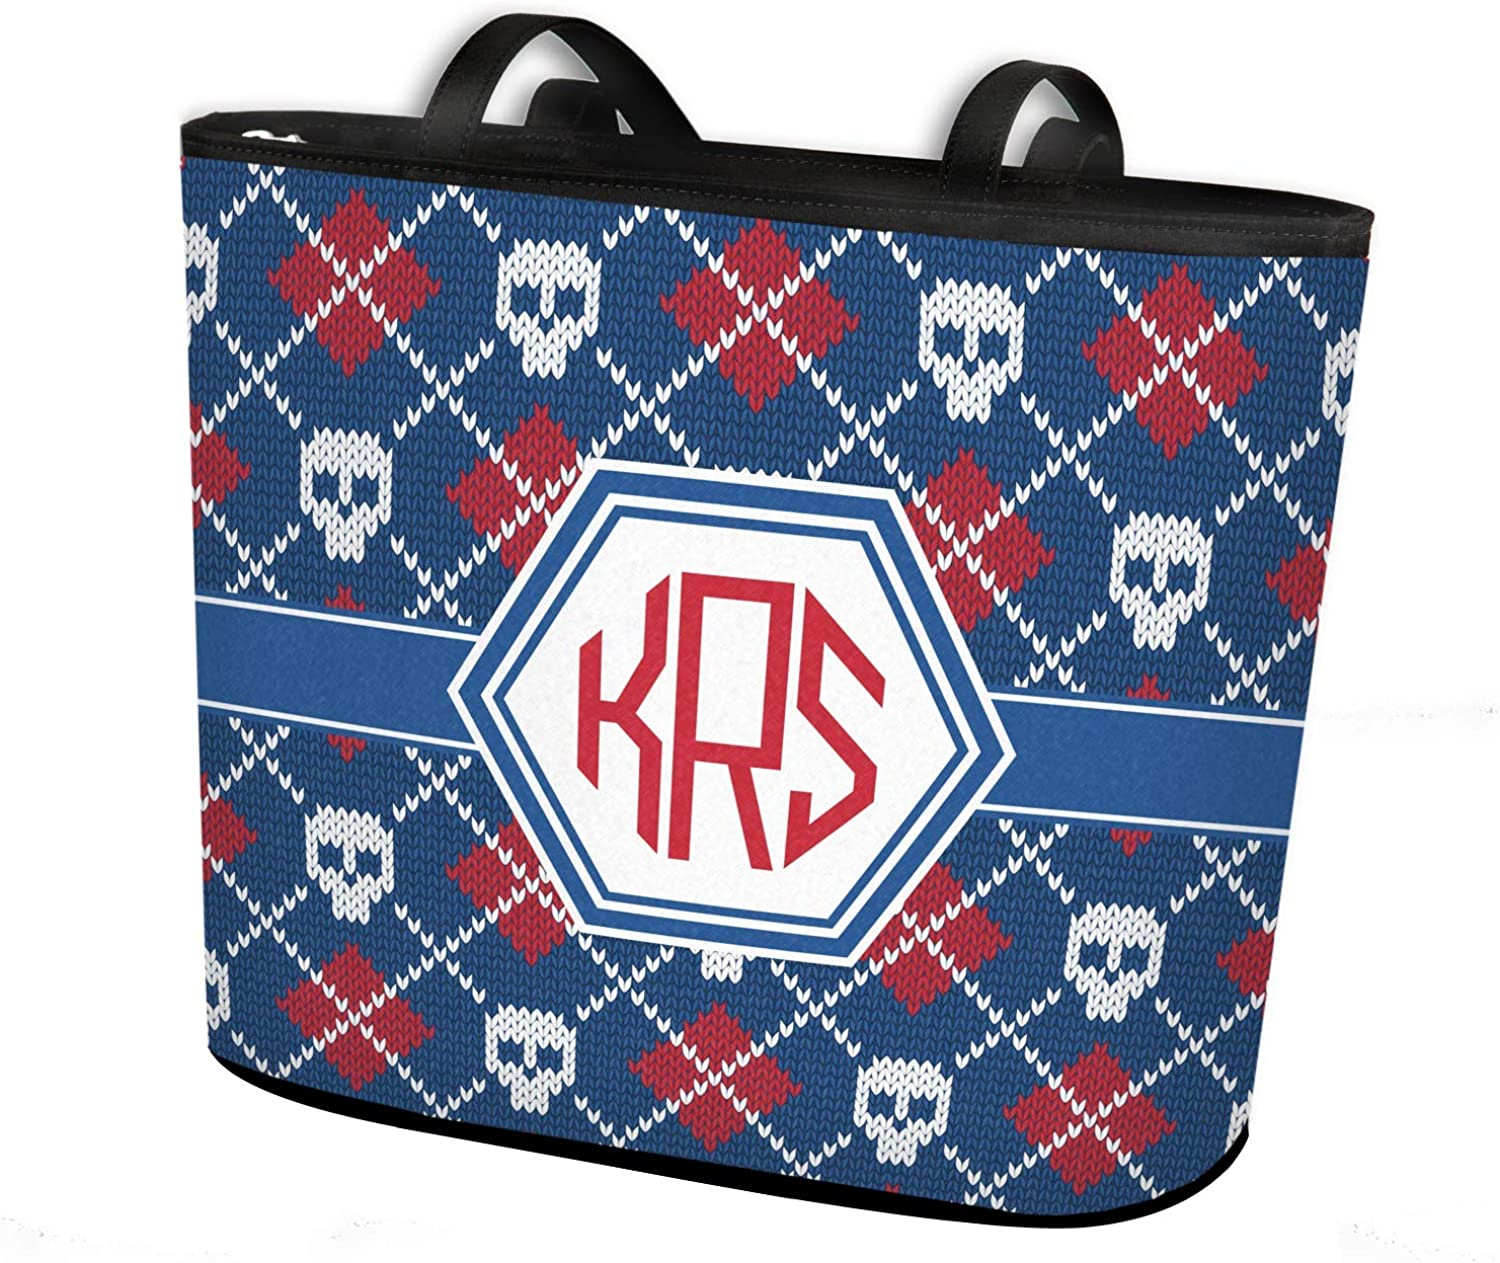 Knitted Argyle /& Skulls Bucket Tote w//Genuine Leather Trim Personalized Regular w//Front /& Back Design